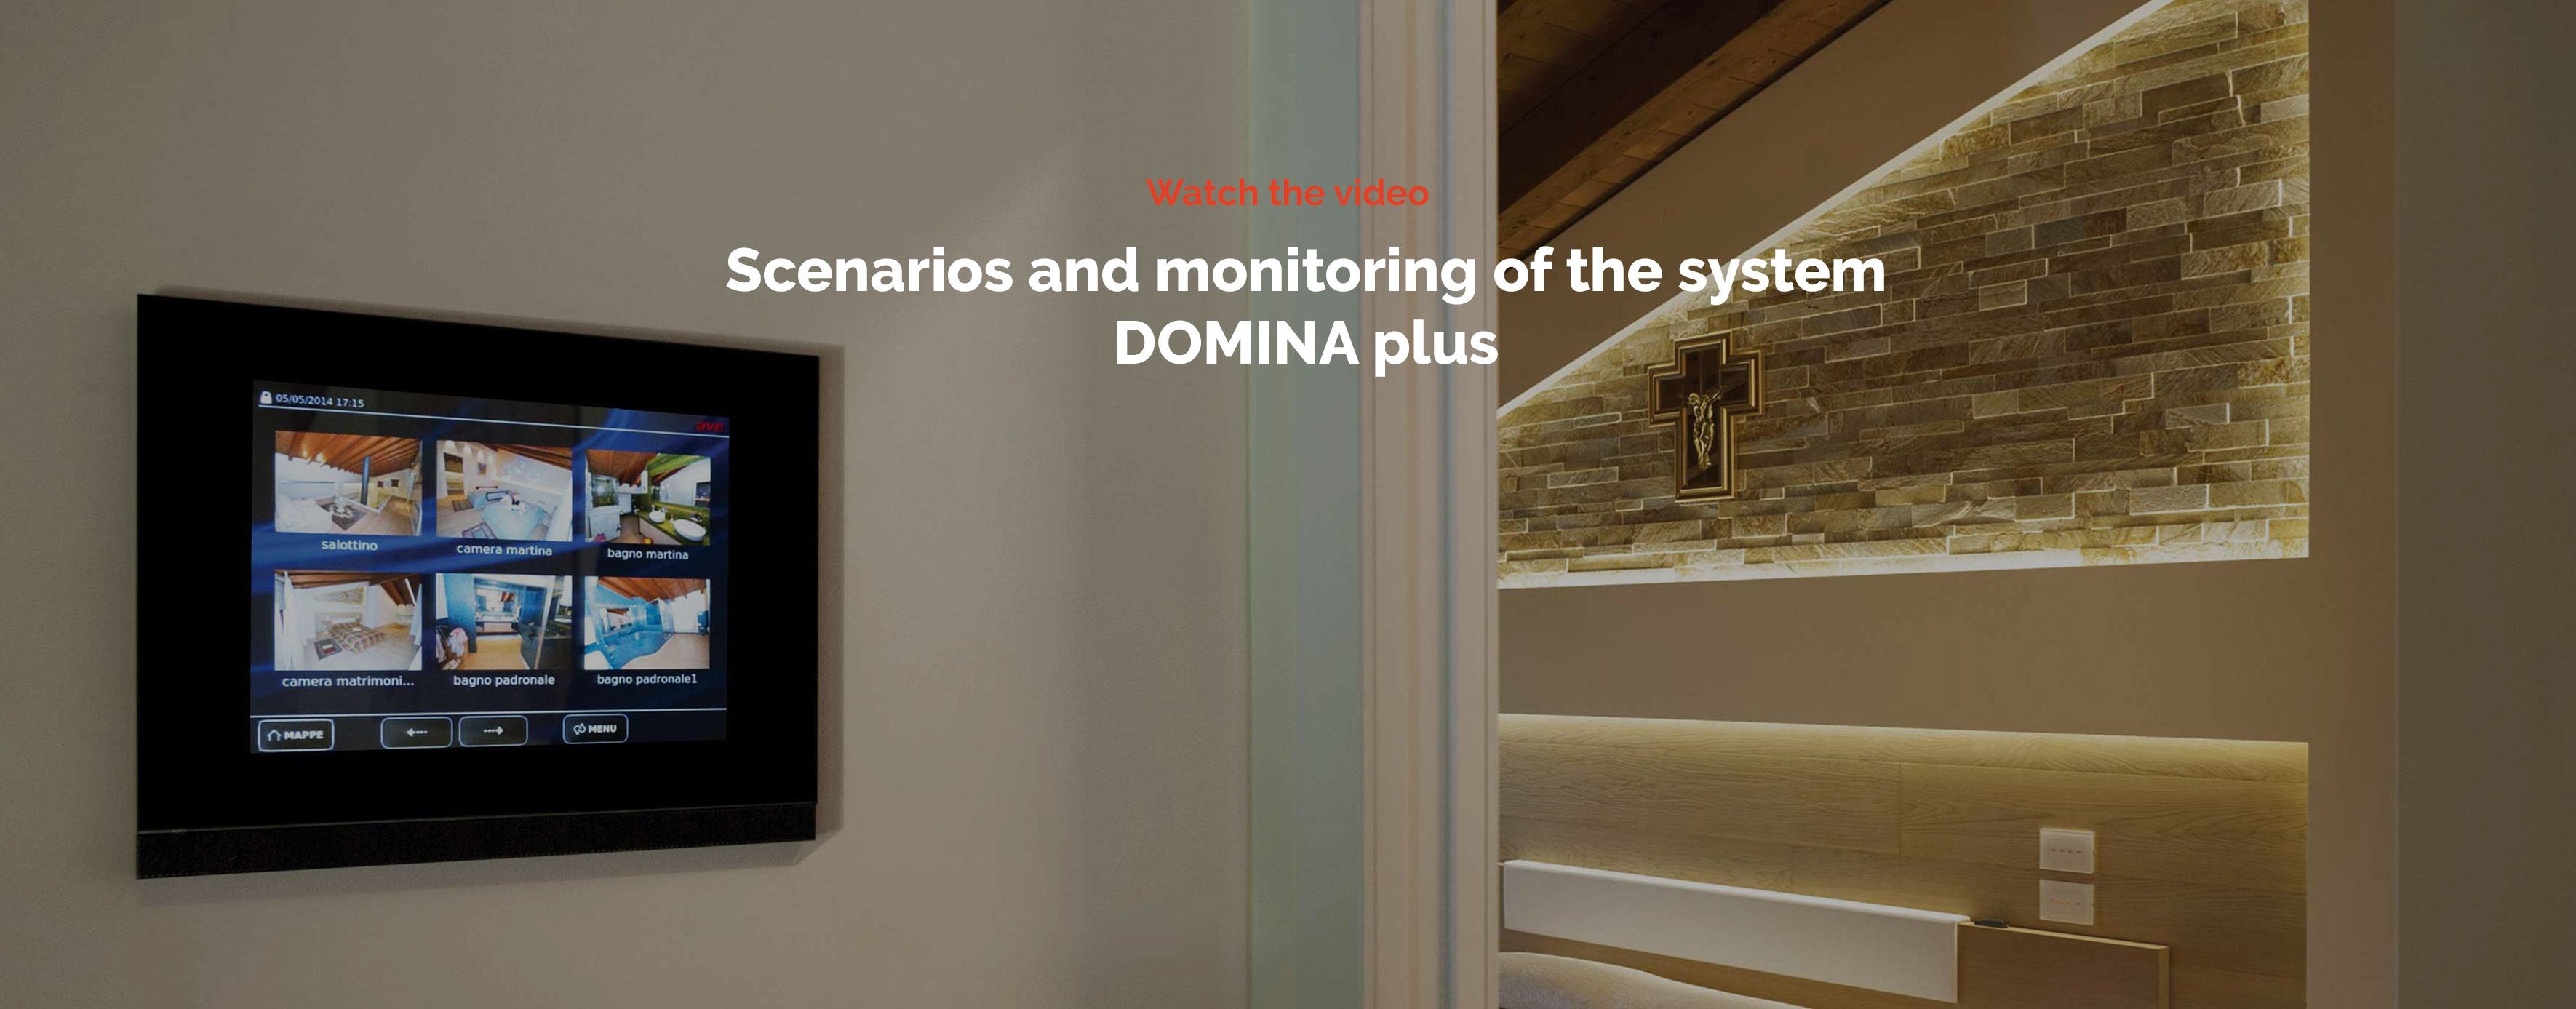 Home automation AVE DOMINA plus - Scenarios and supervision of the system video